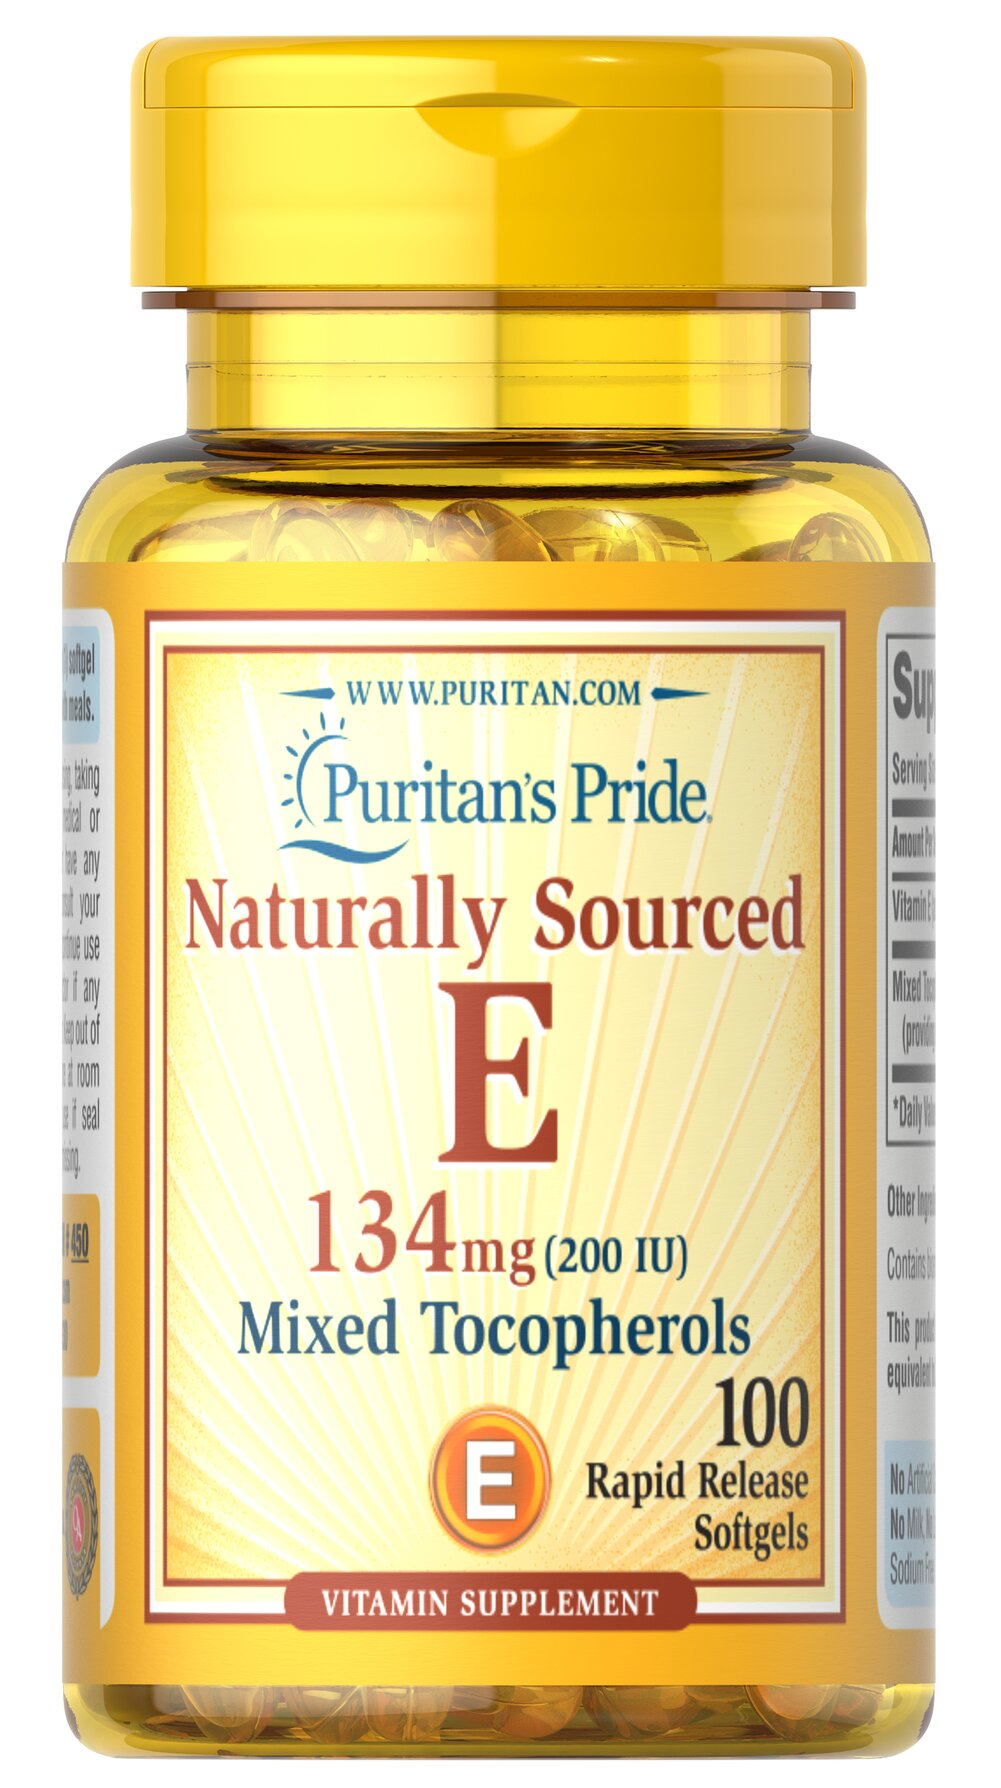 Vitamin E-200 iu Mixed Tocopherols Natural <p><b>Vitamin E</b> promotes immune function and helps support cardiovascular health.** Vitamin E is also a powerful <b>antioxidant</b> that helps fight cell-damaging free radicals in the body.** Studies have shown that oxidative stress caused by free radicals may contribute to the premature aging of cells.**</p> 100 Softgels 200 IU $11.29